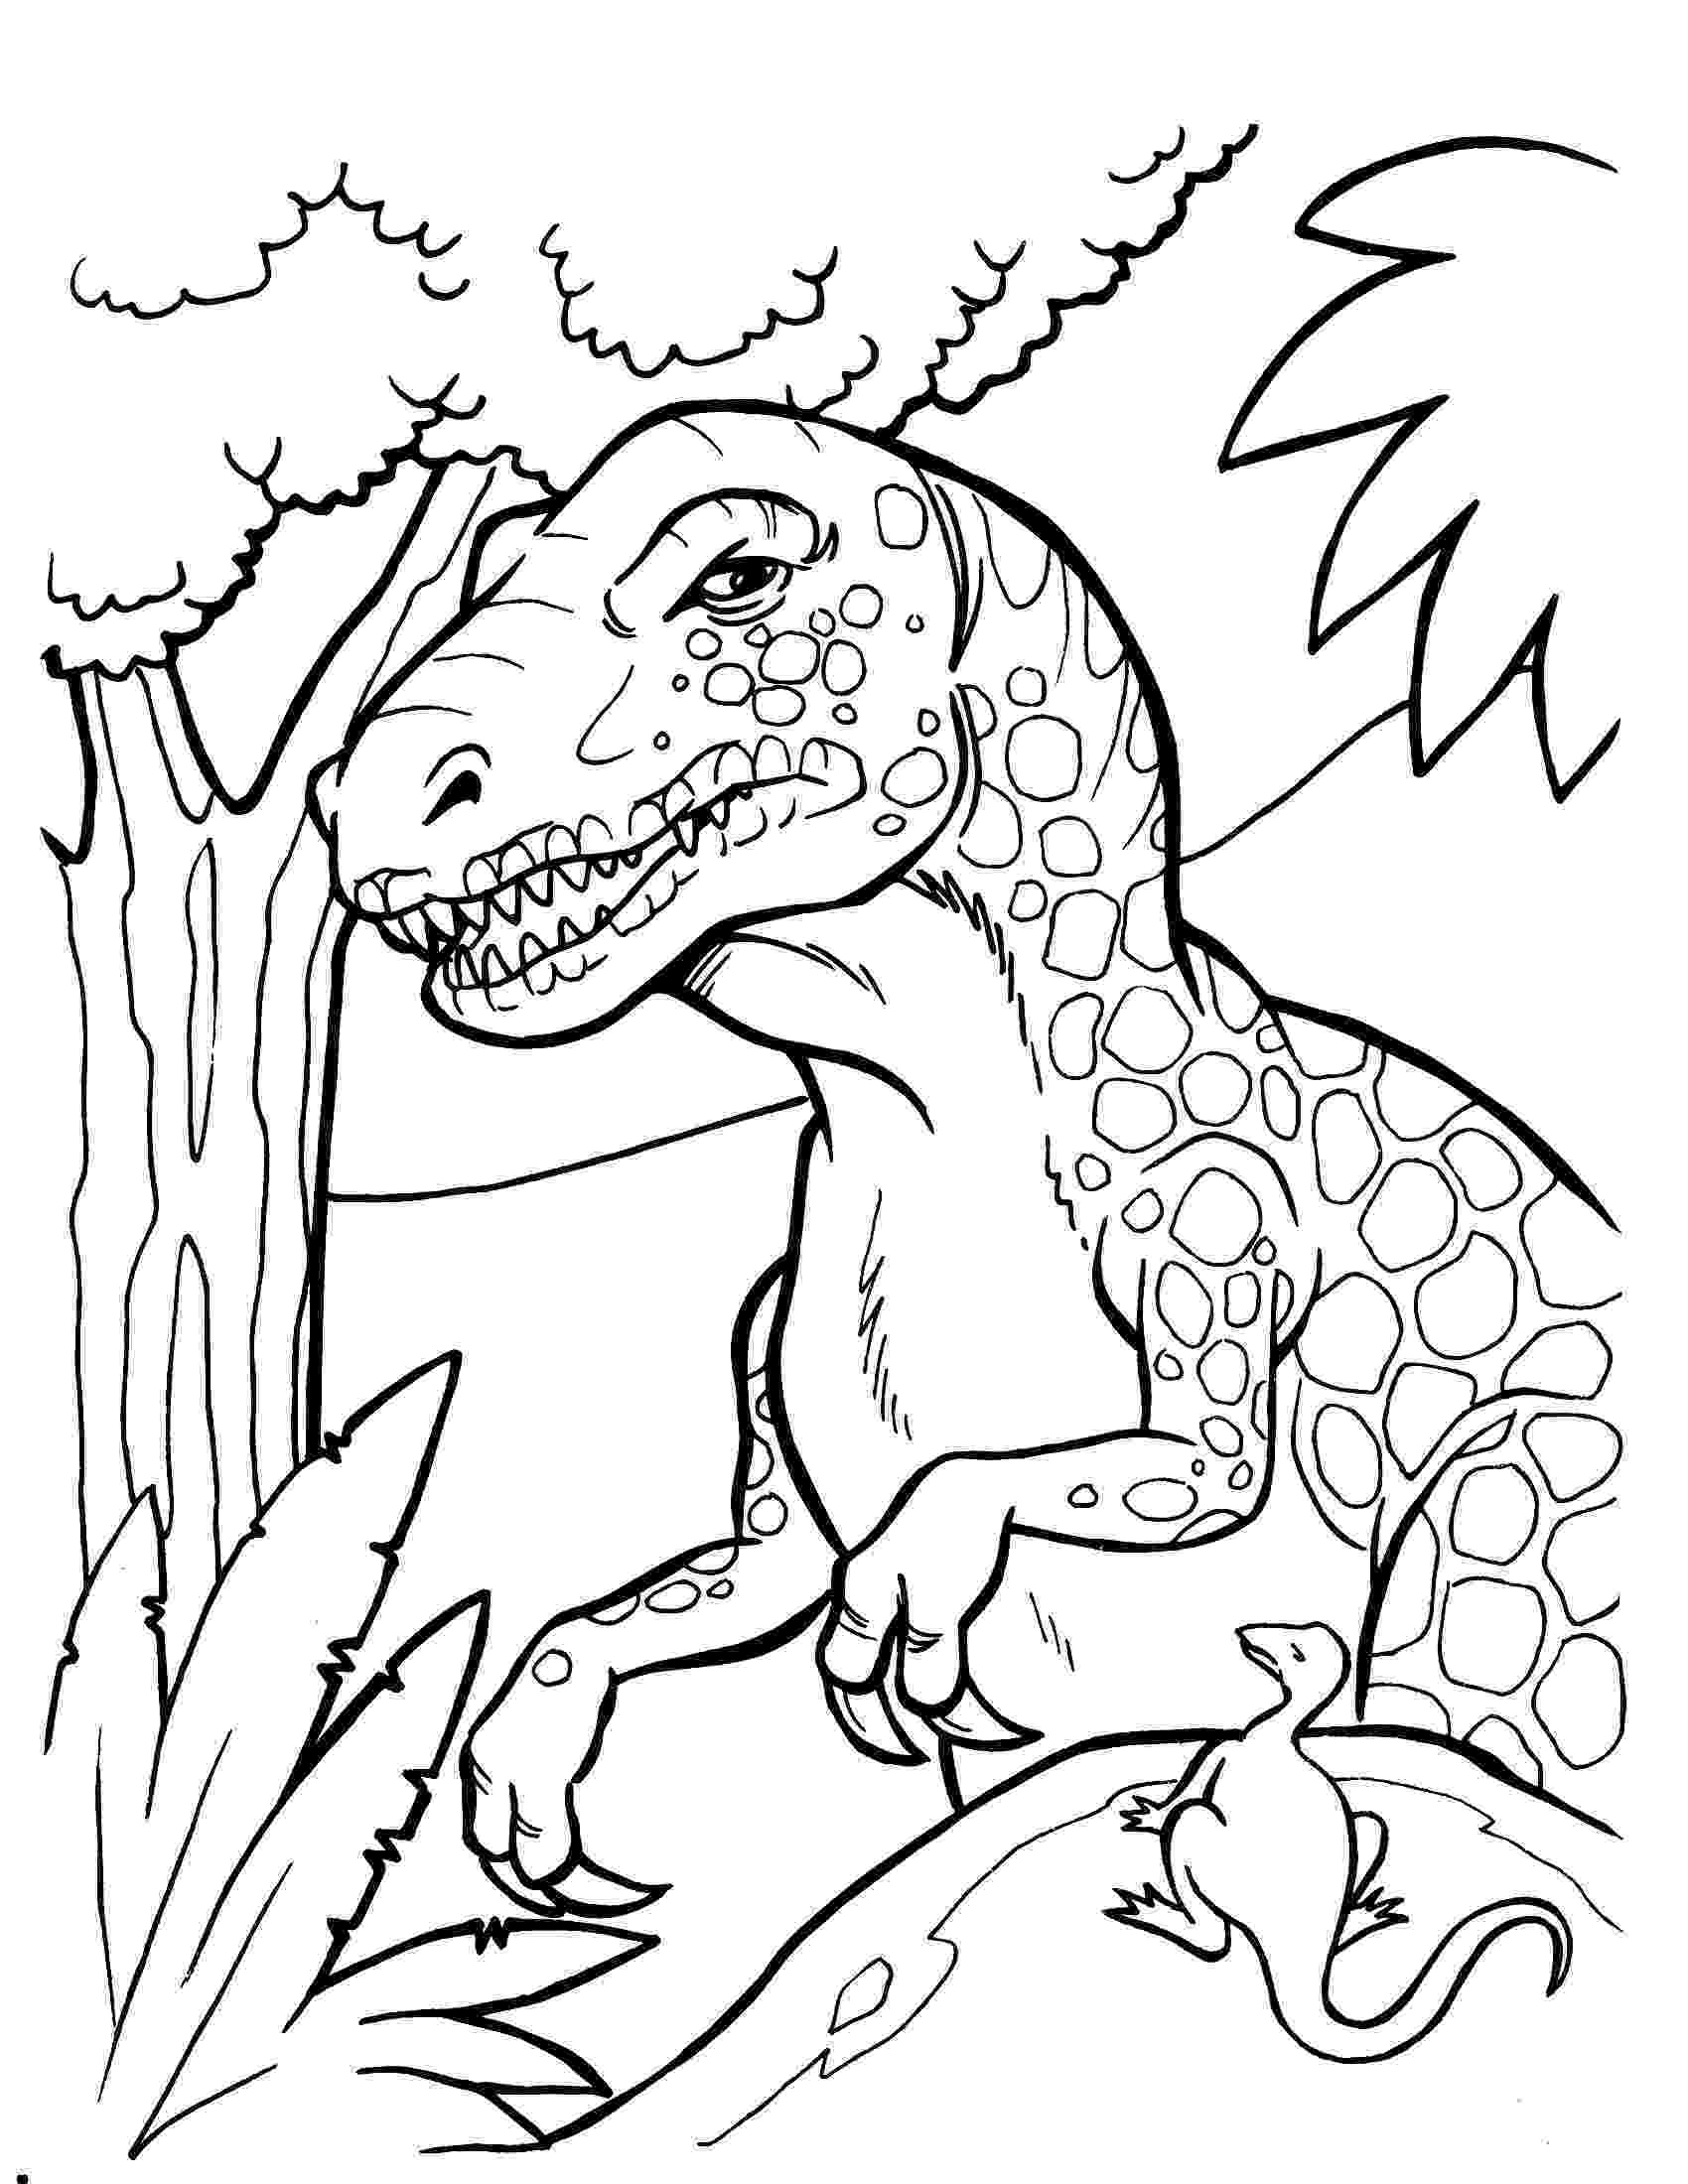 colouring dinosaur the good dinosaur coloring pages disneyclipscom colouring dinosaur